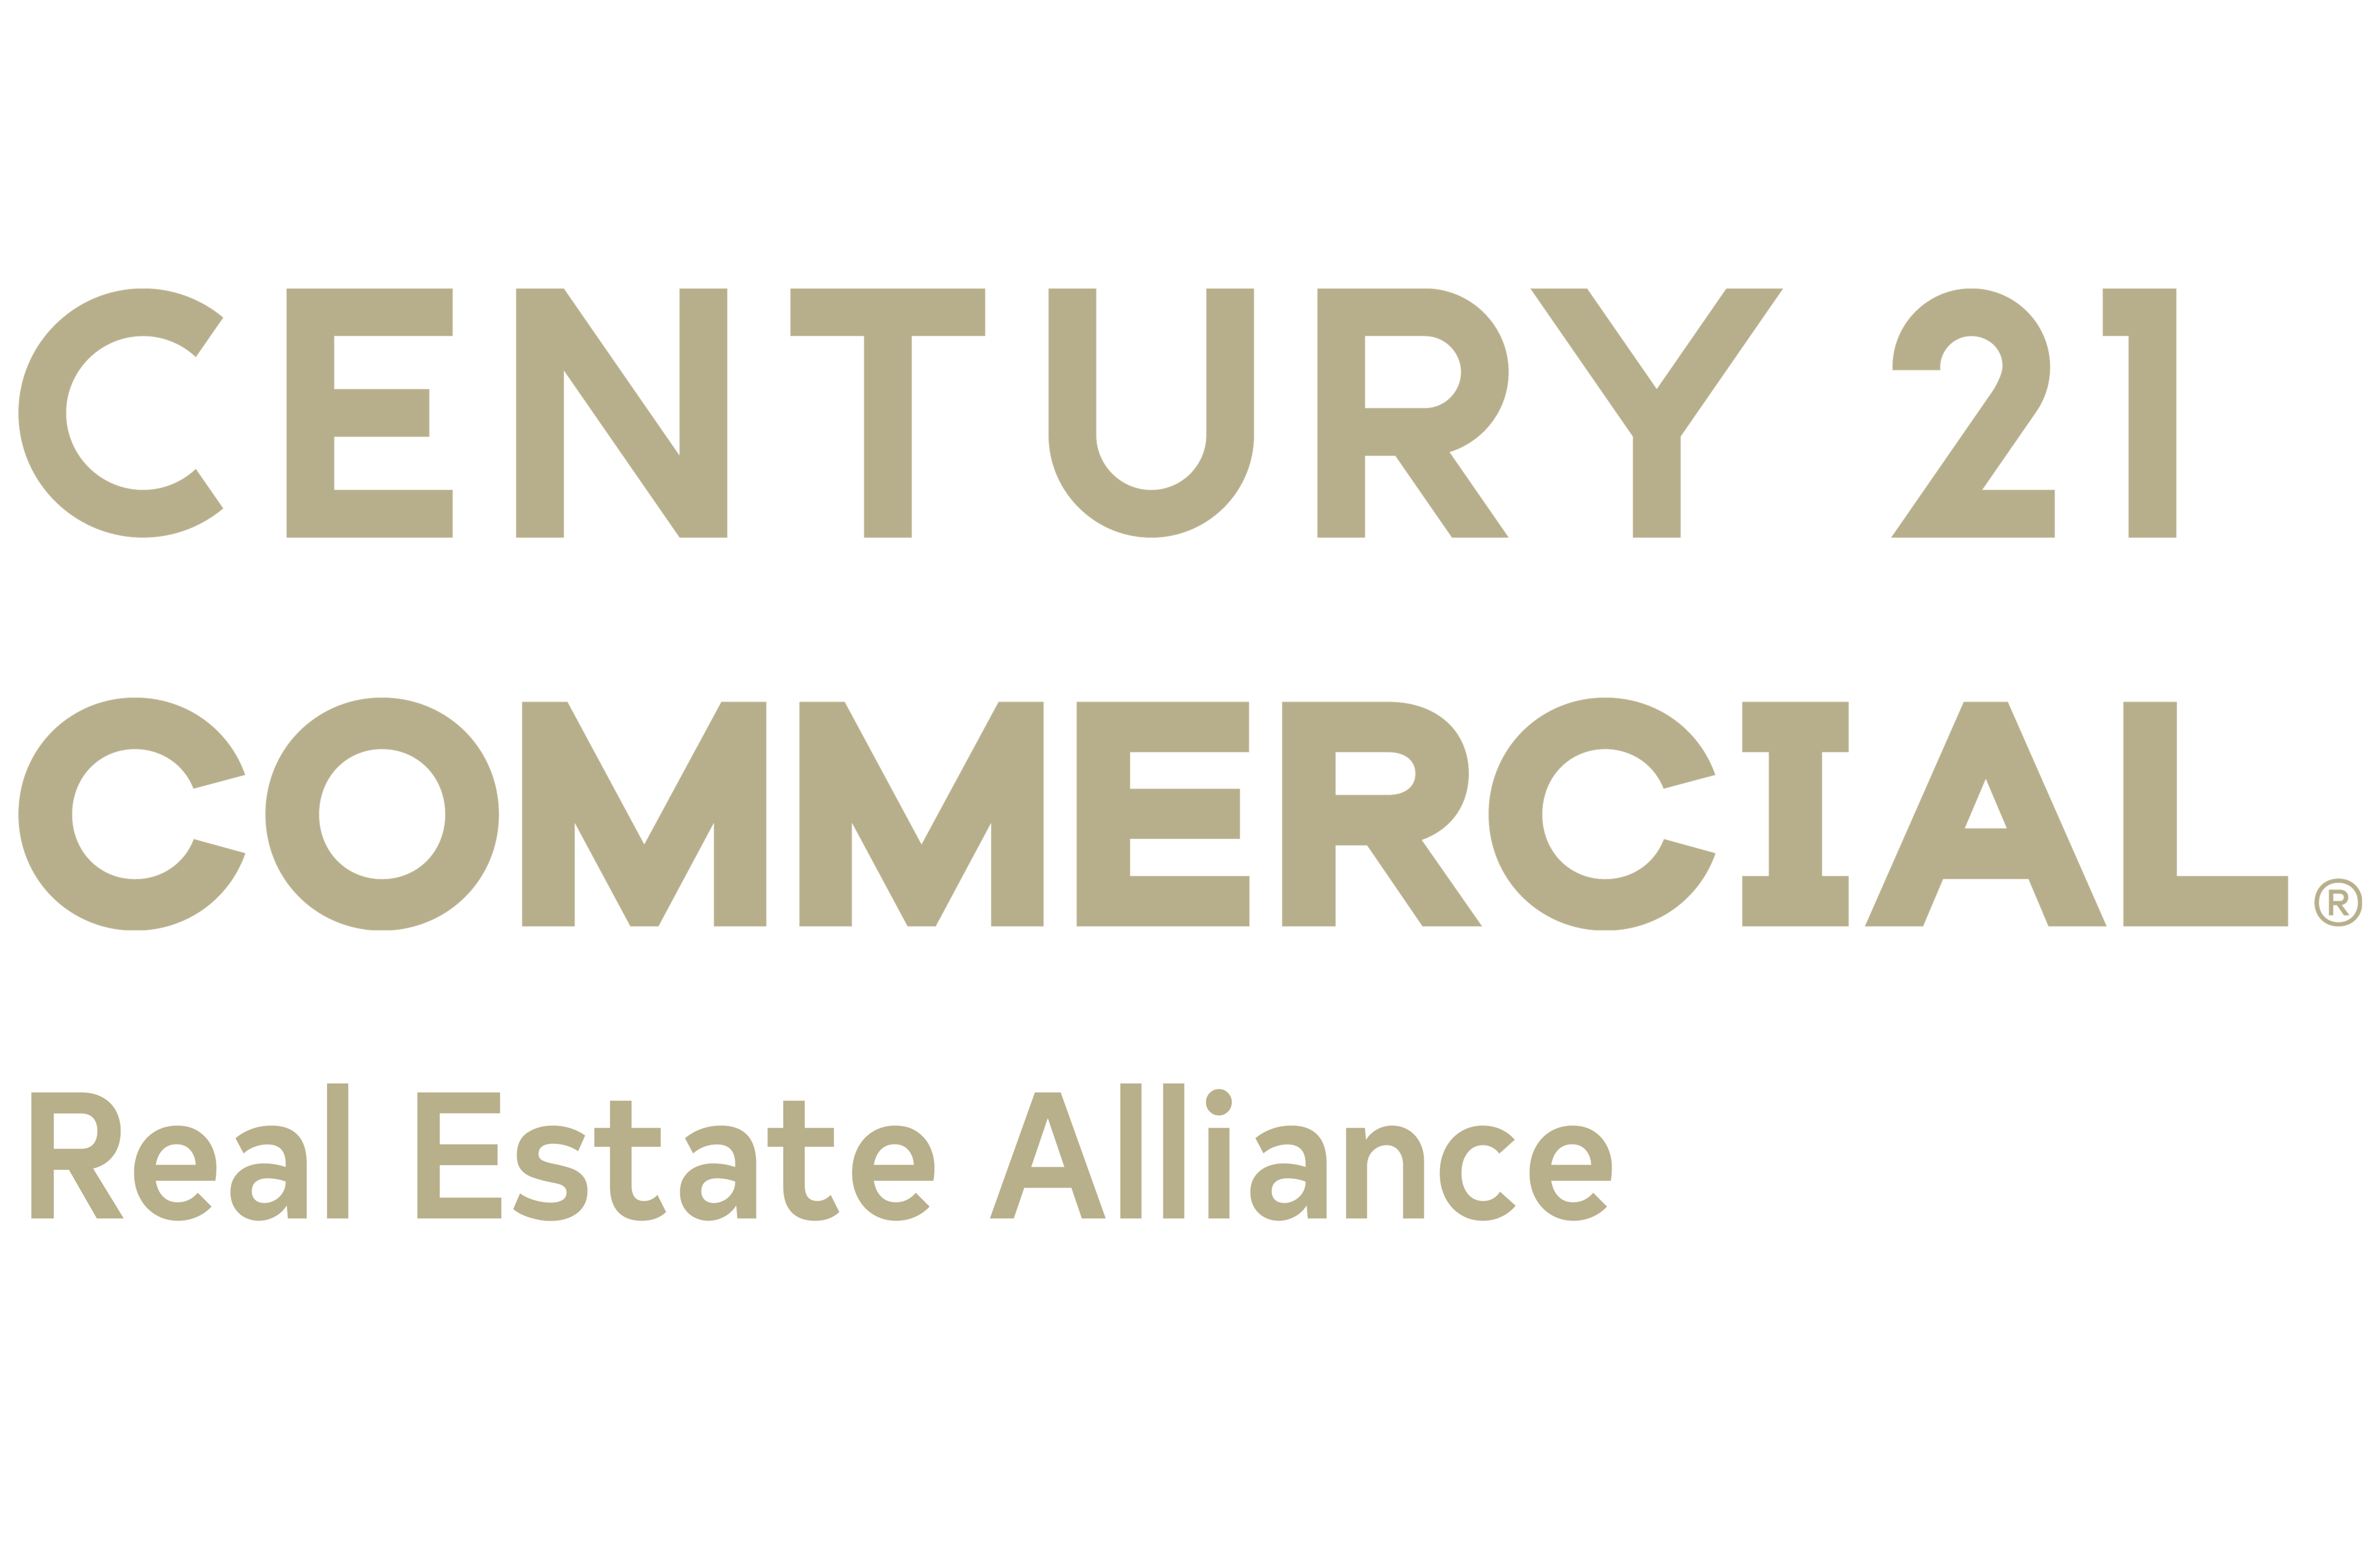 Real Estate Alliance Team of CENTURY 21 Real Estate Alliance logo